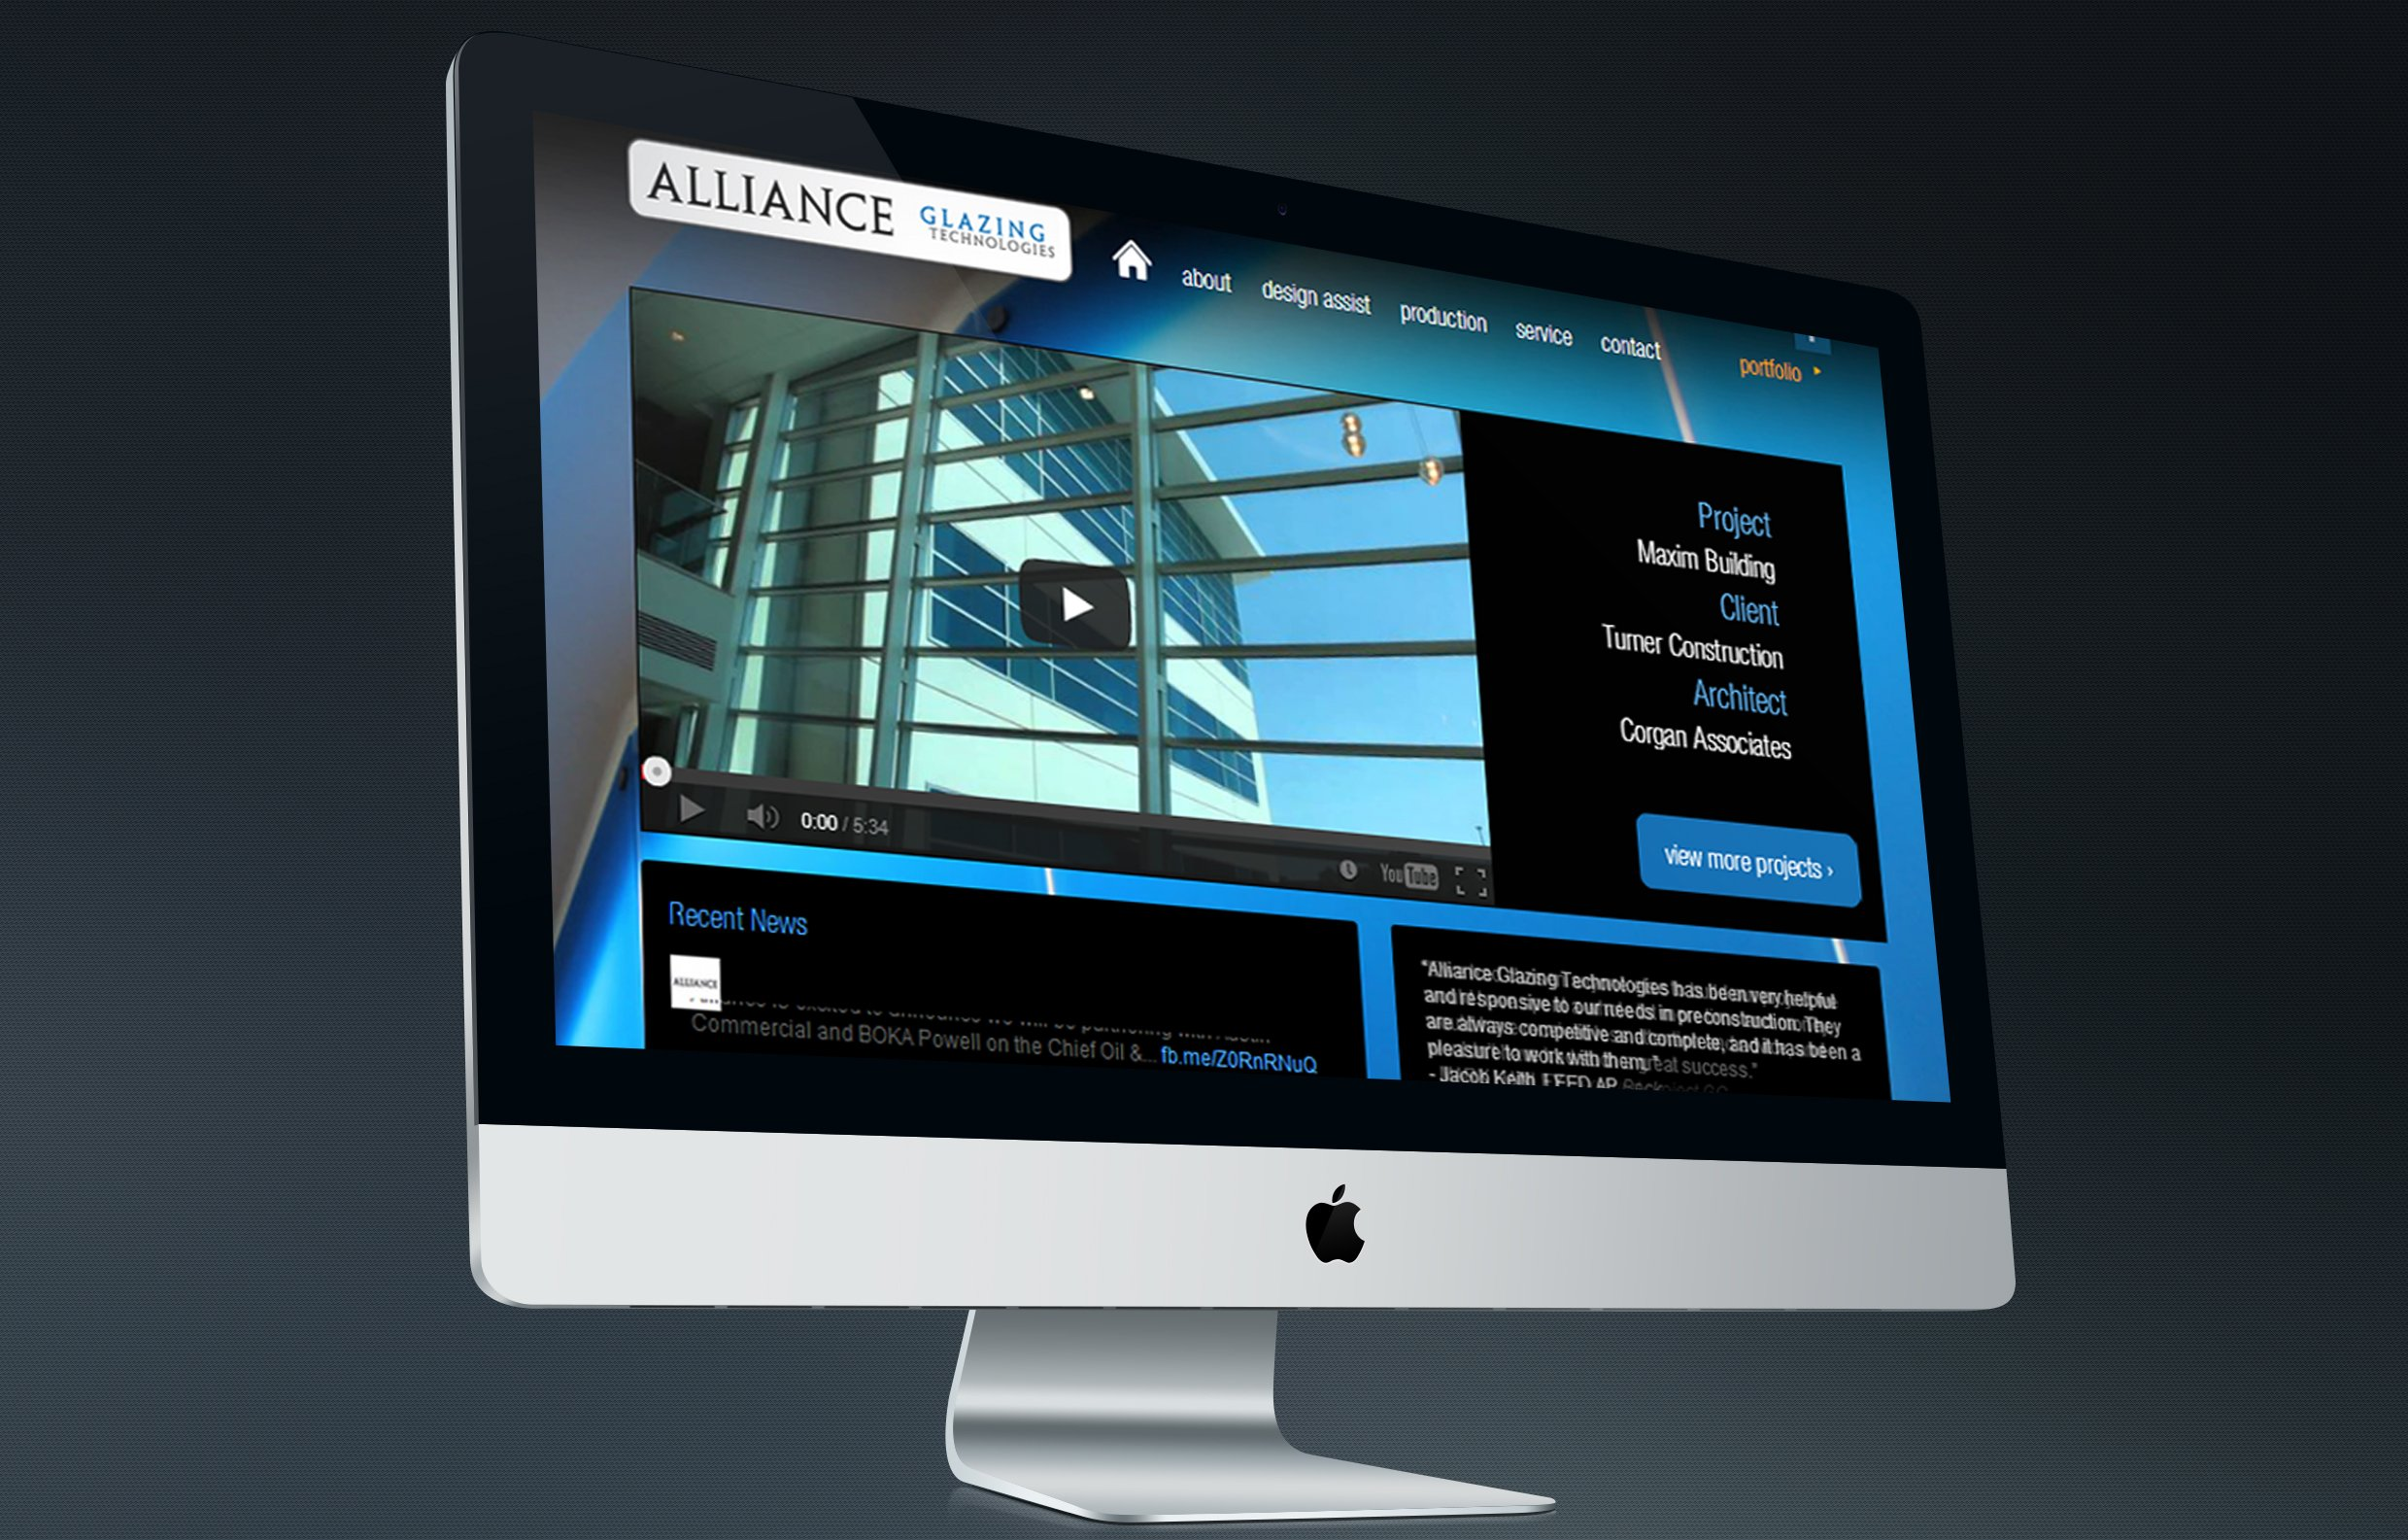 Alliance Glazing Website Design